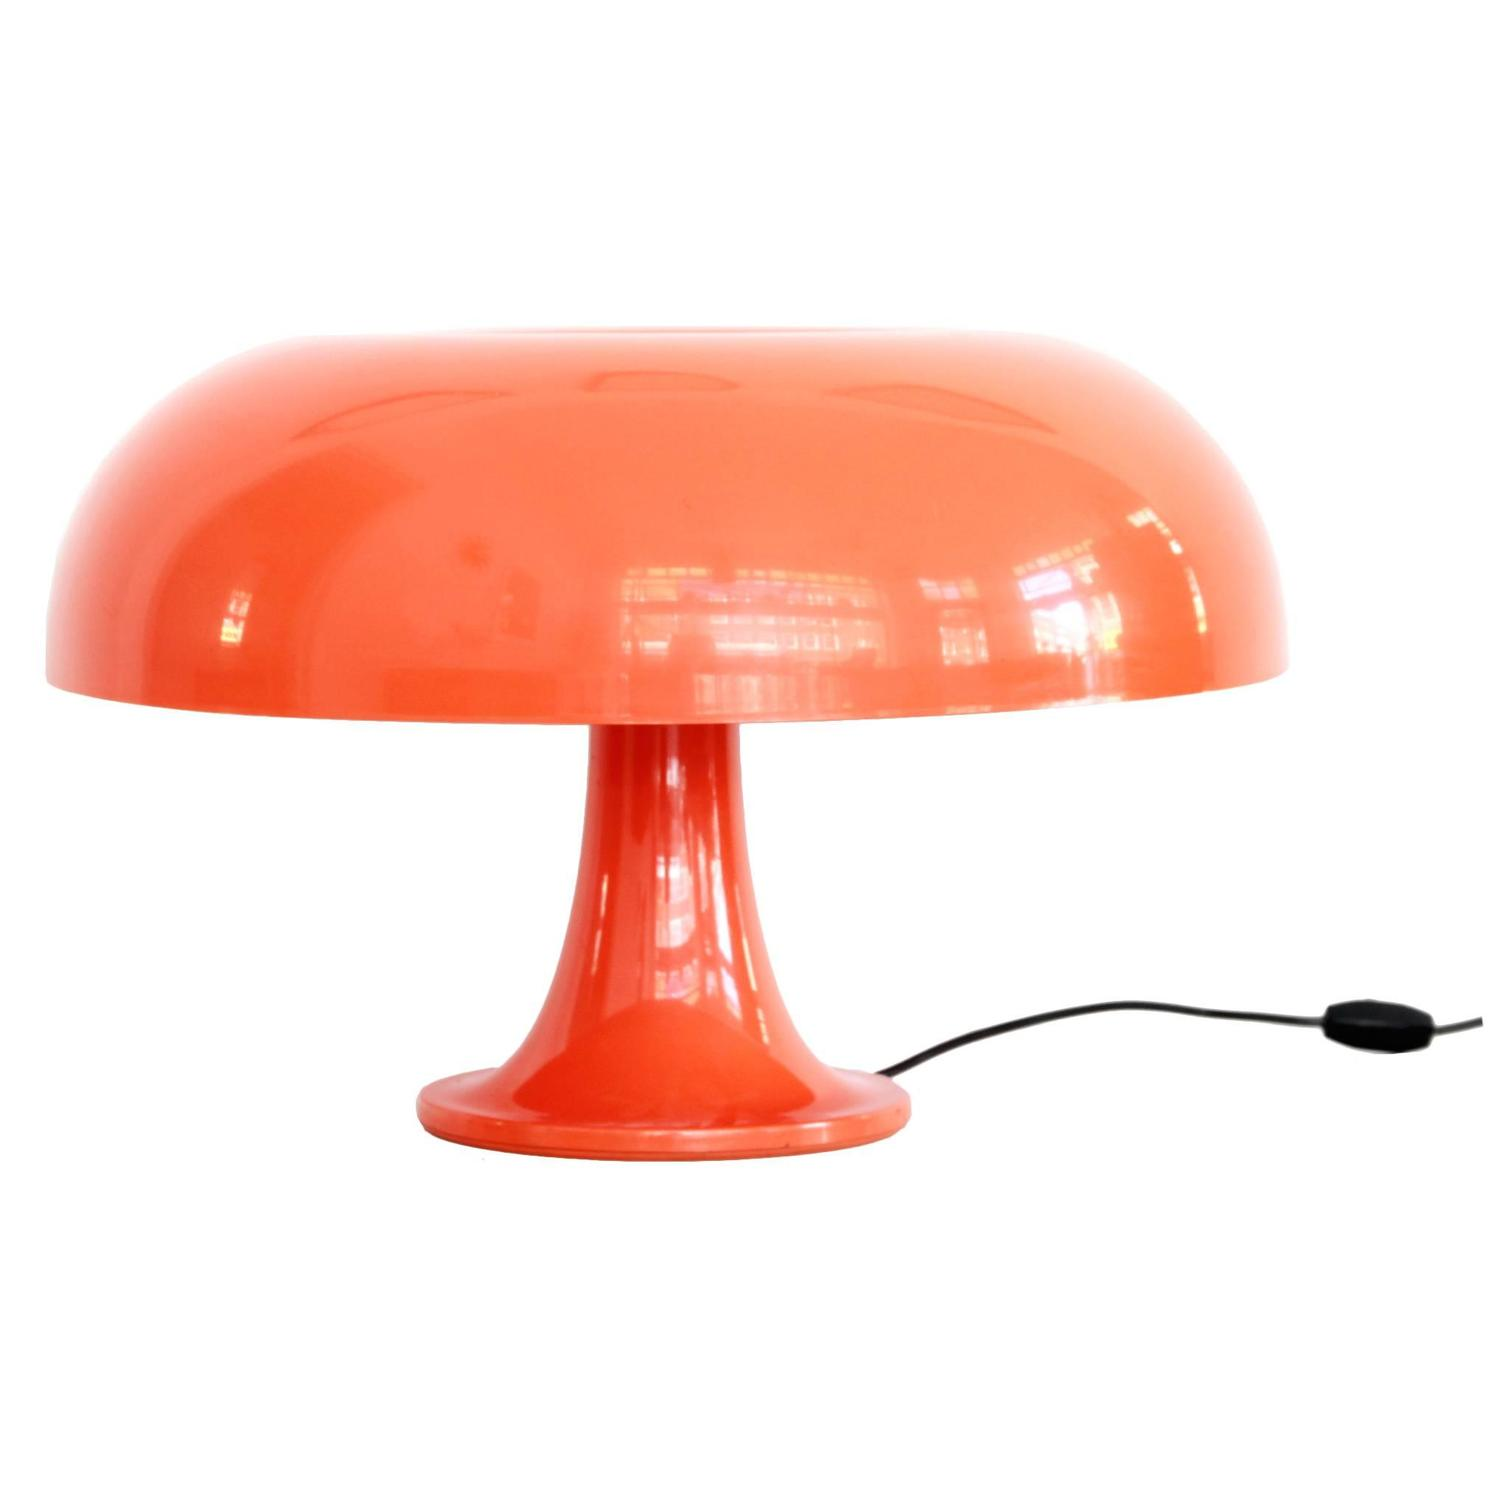 1st edition nesso table lamp from giancarlo mattioli for artemide italy 1960s for sale at 1stdibs. Black Bedroom Furniture Sets. Home Design Ideas